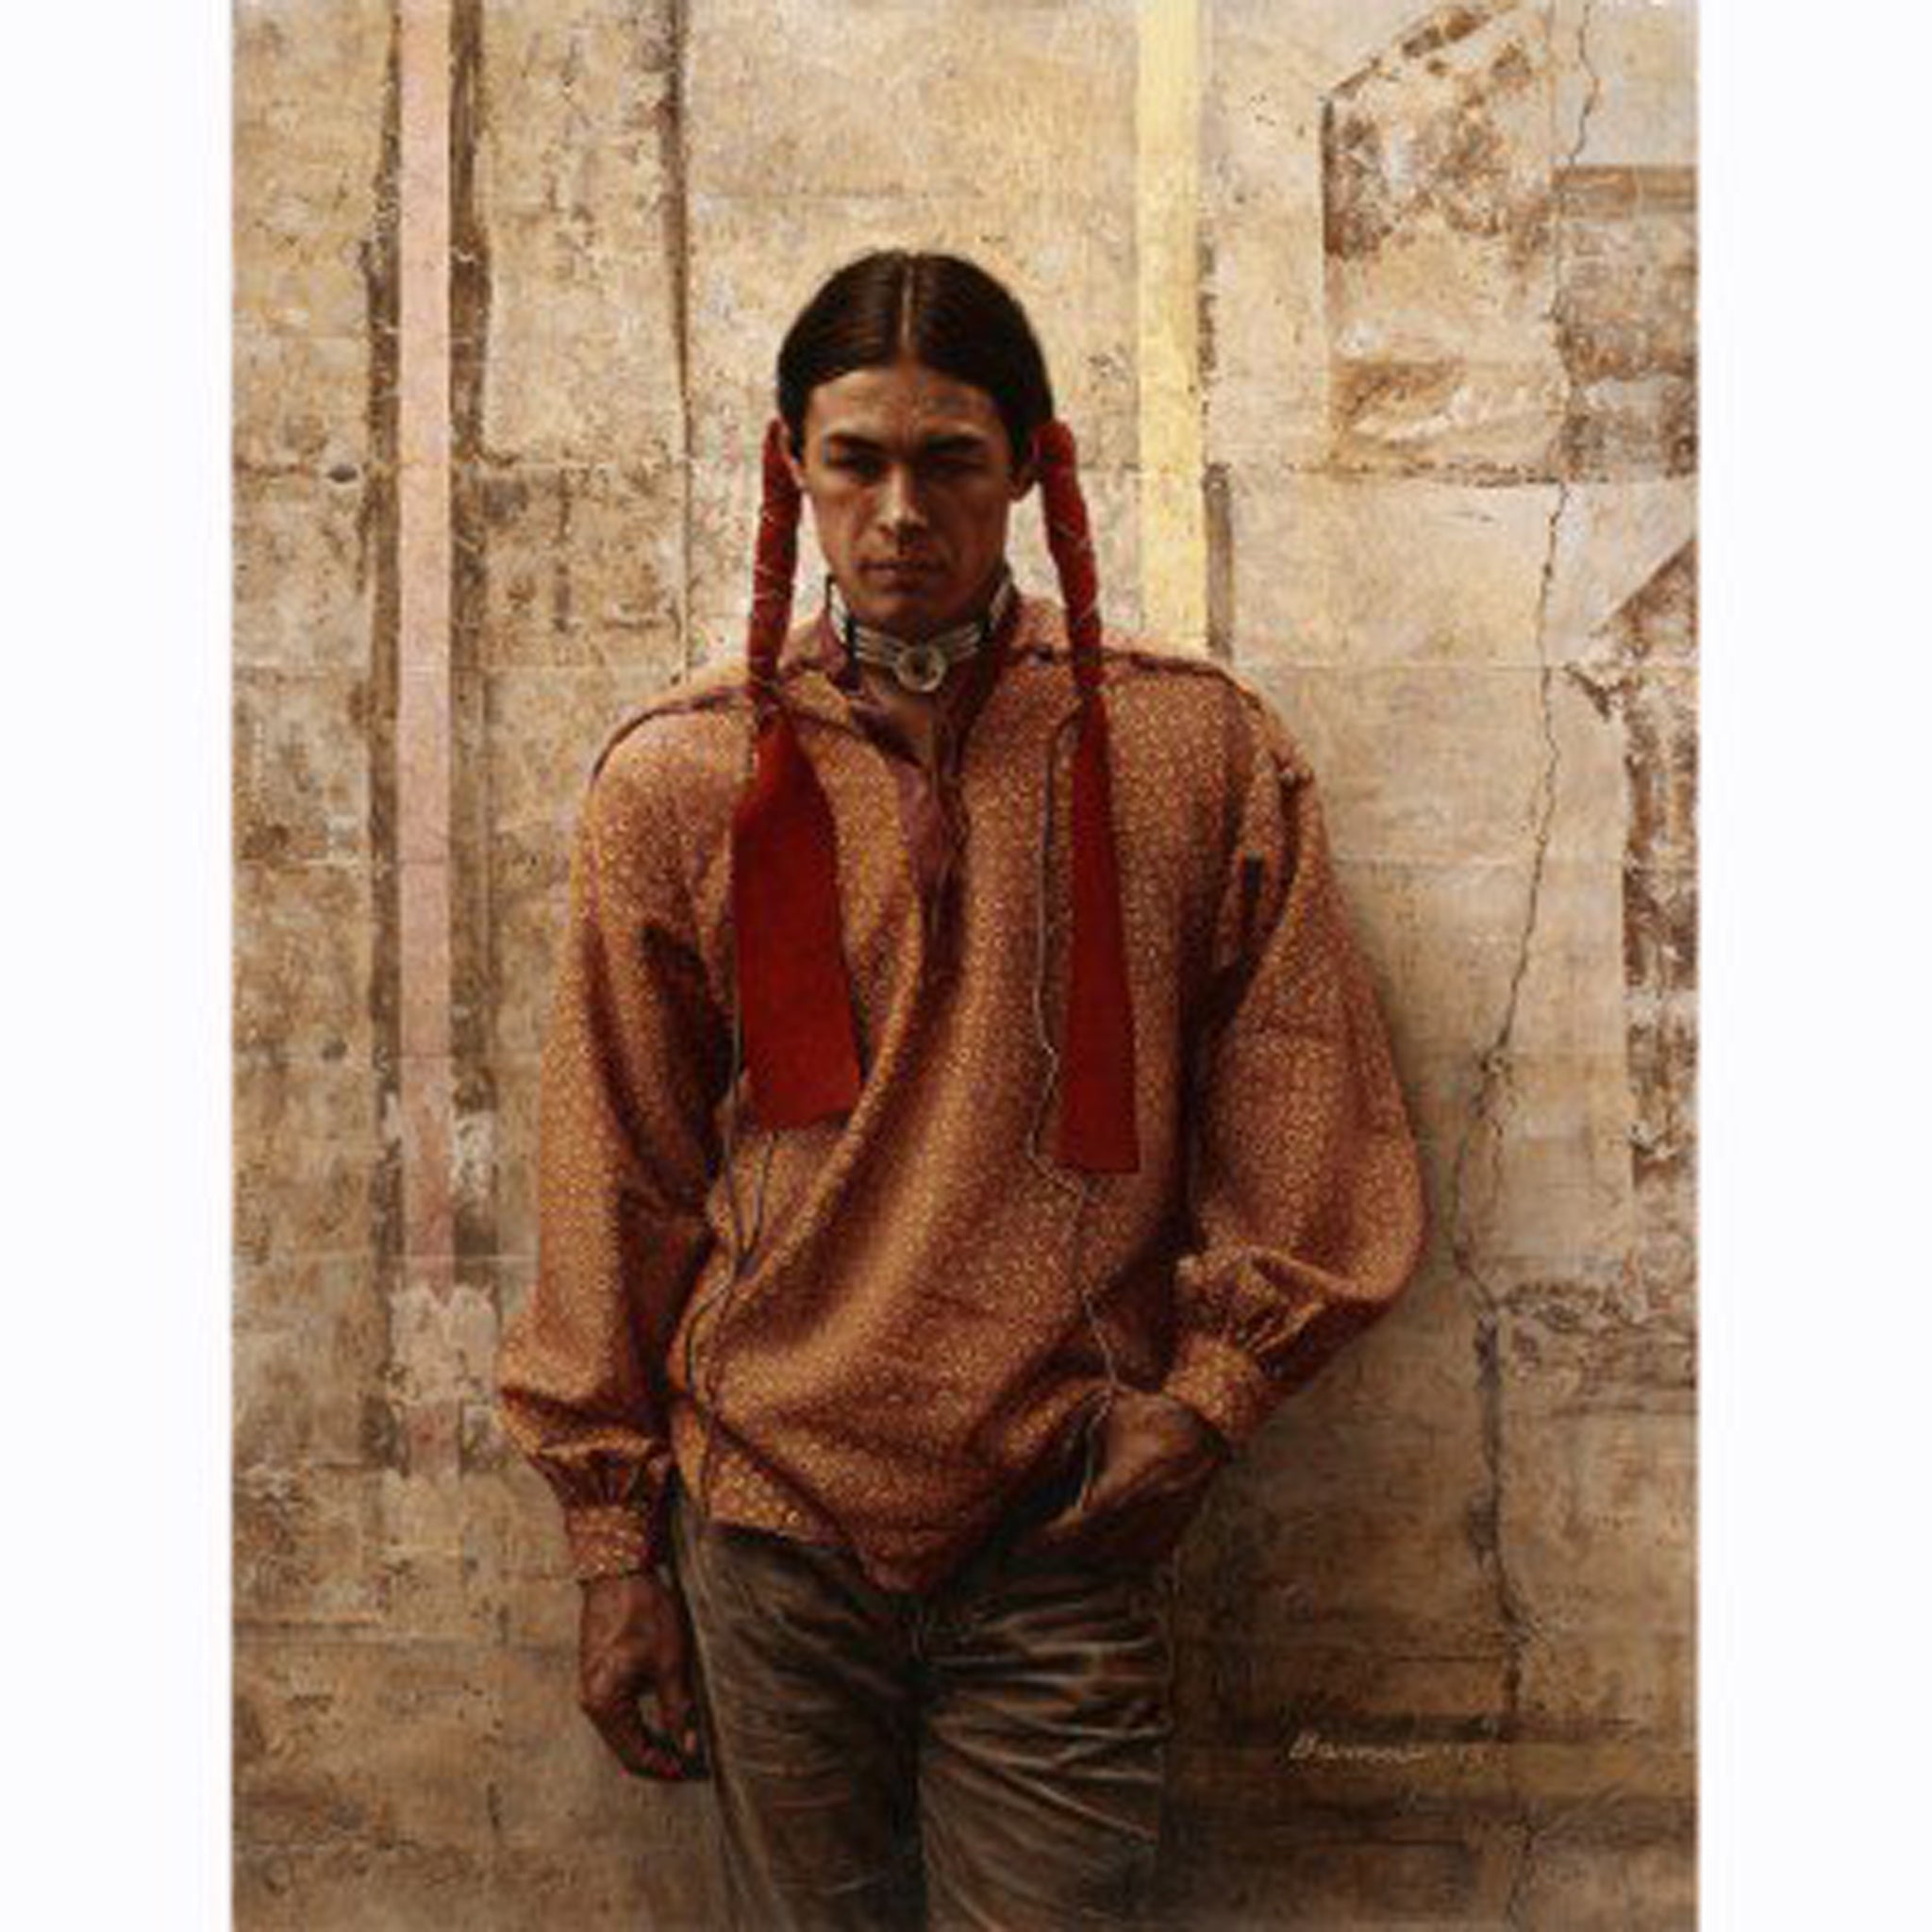 PR 3* A YOUNG OGLALA SIOUX BY JAMES BAMA #31030959